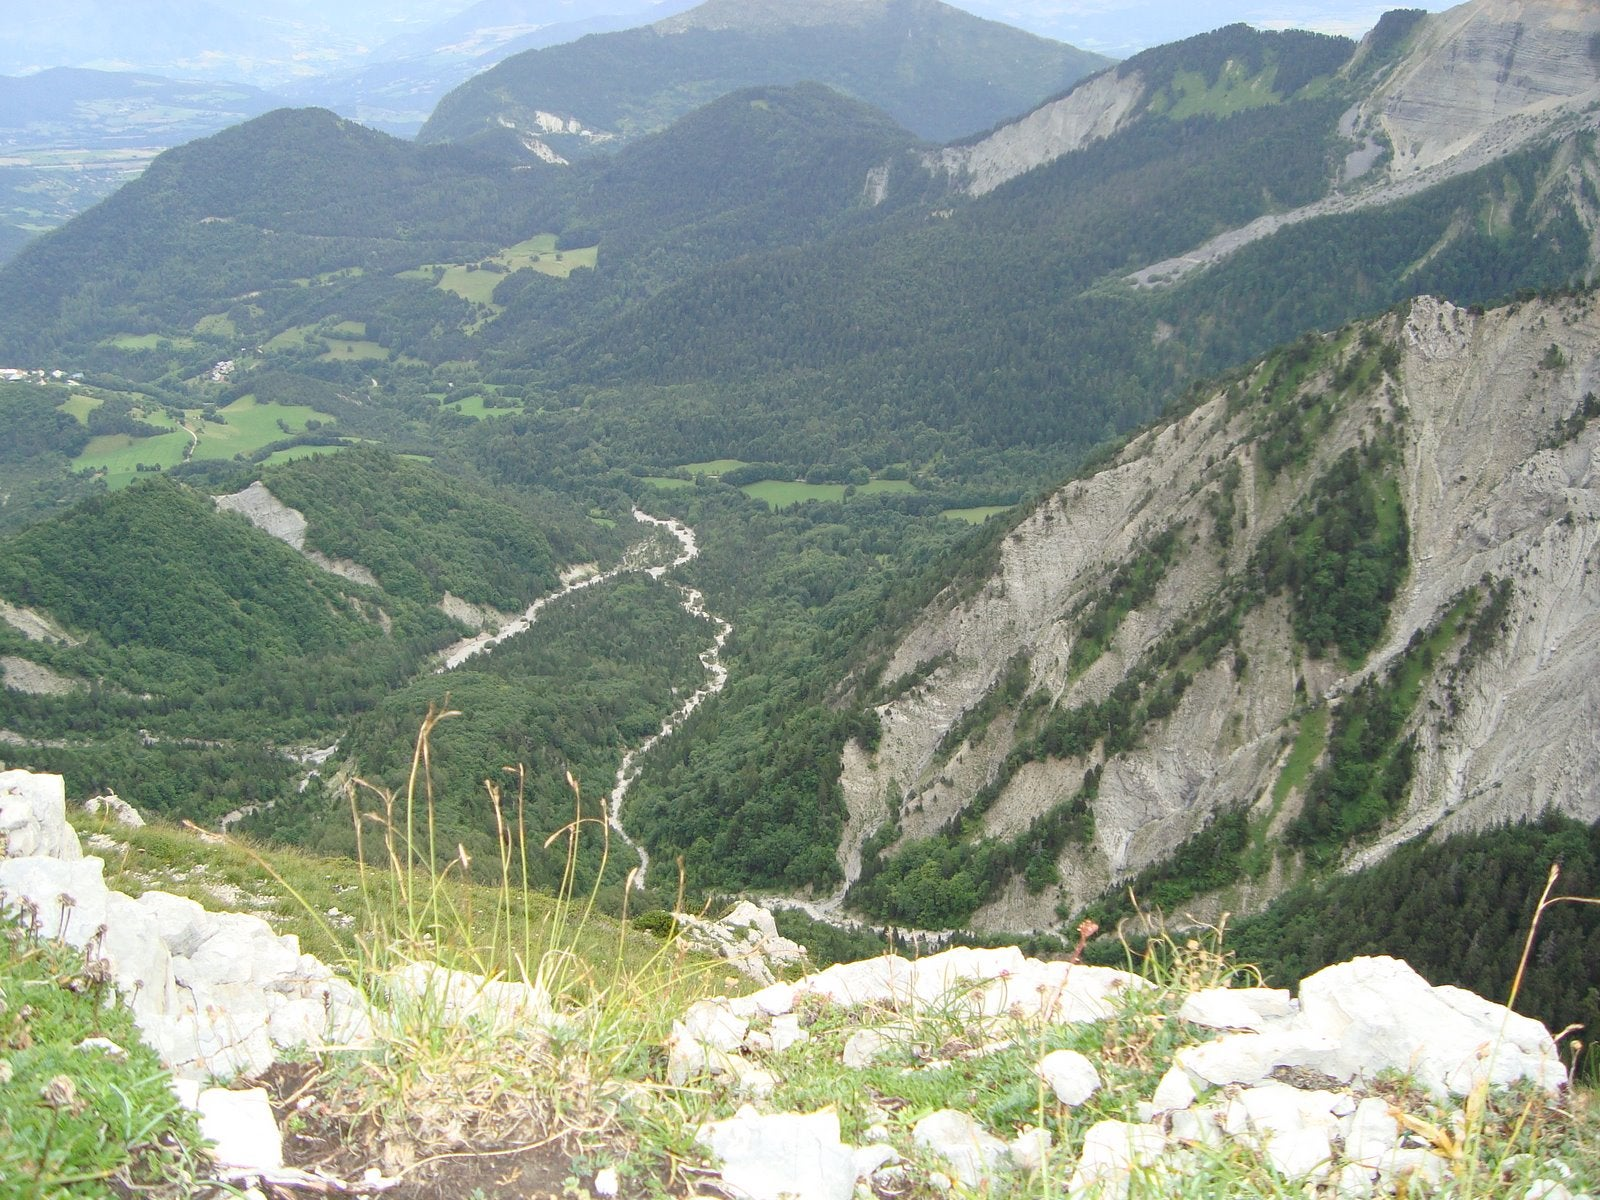 Mountain Range in La Chapelle-en-Vercors